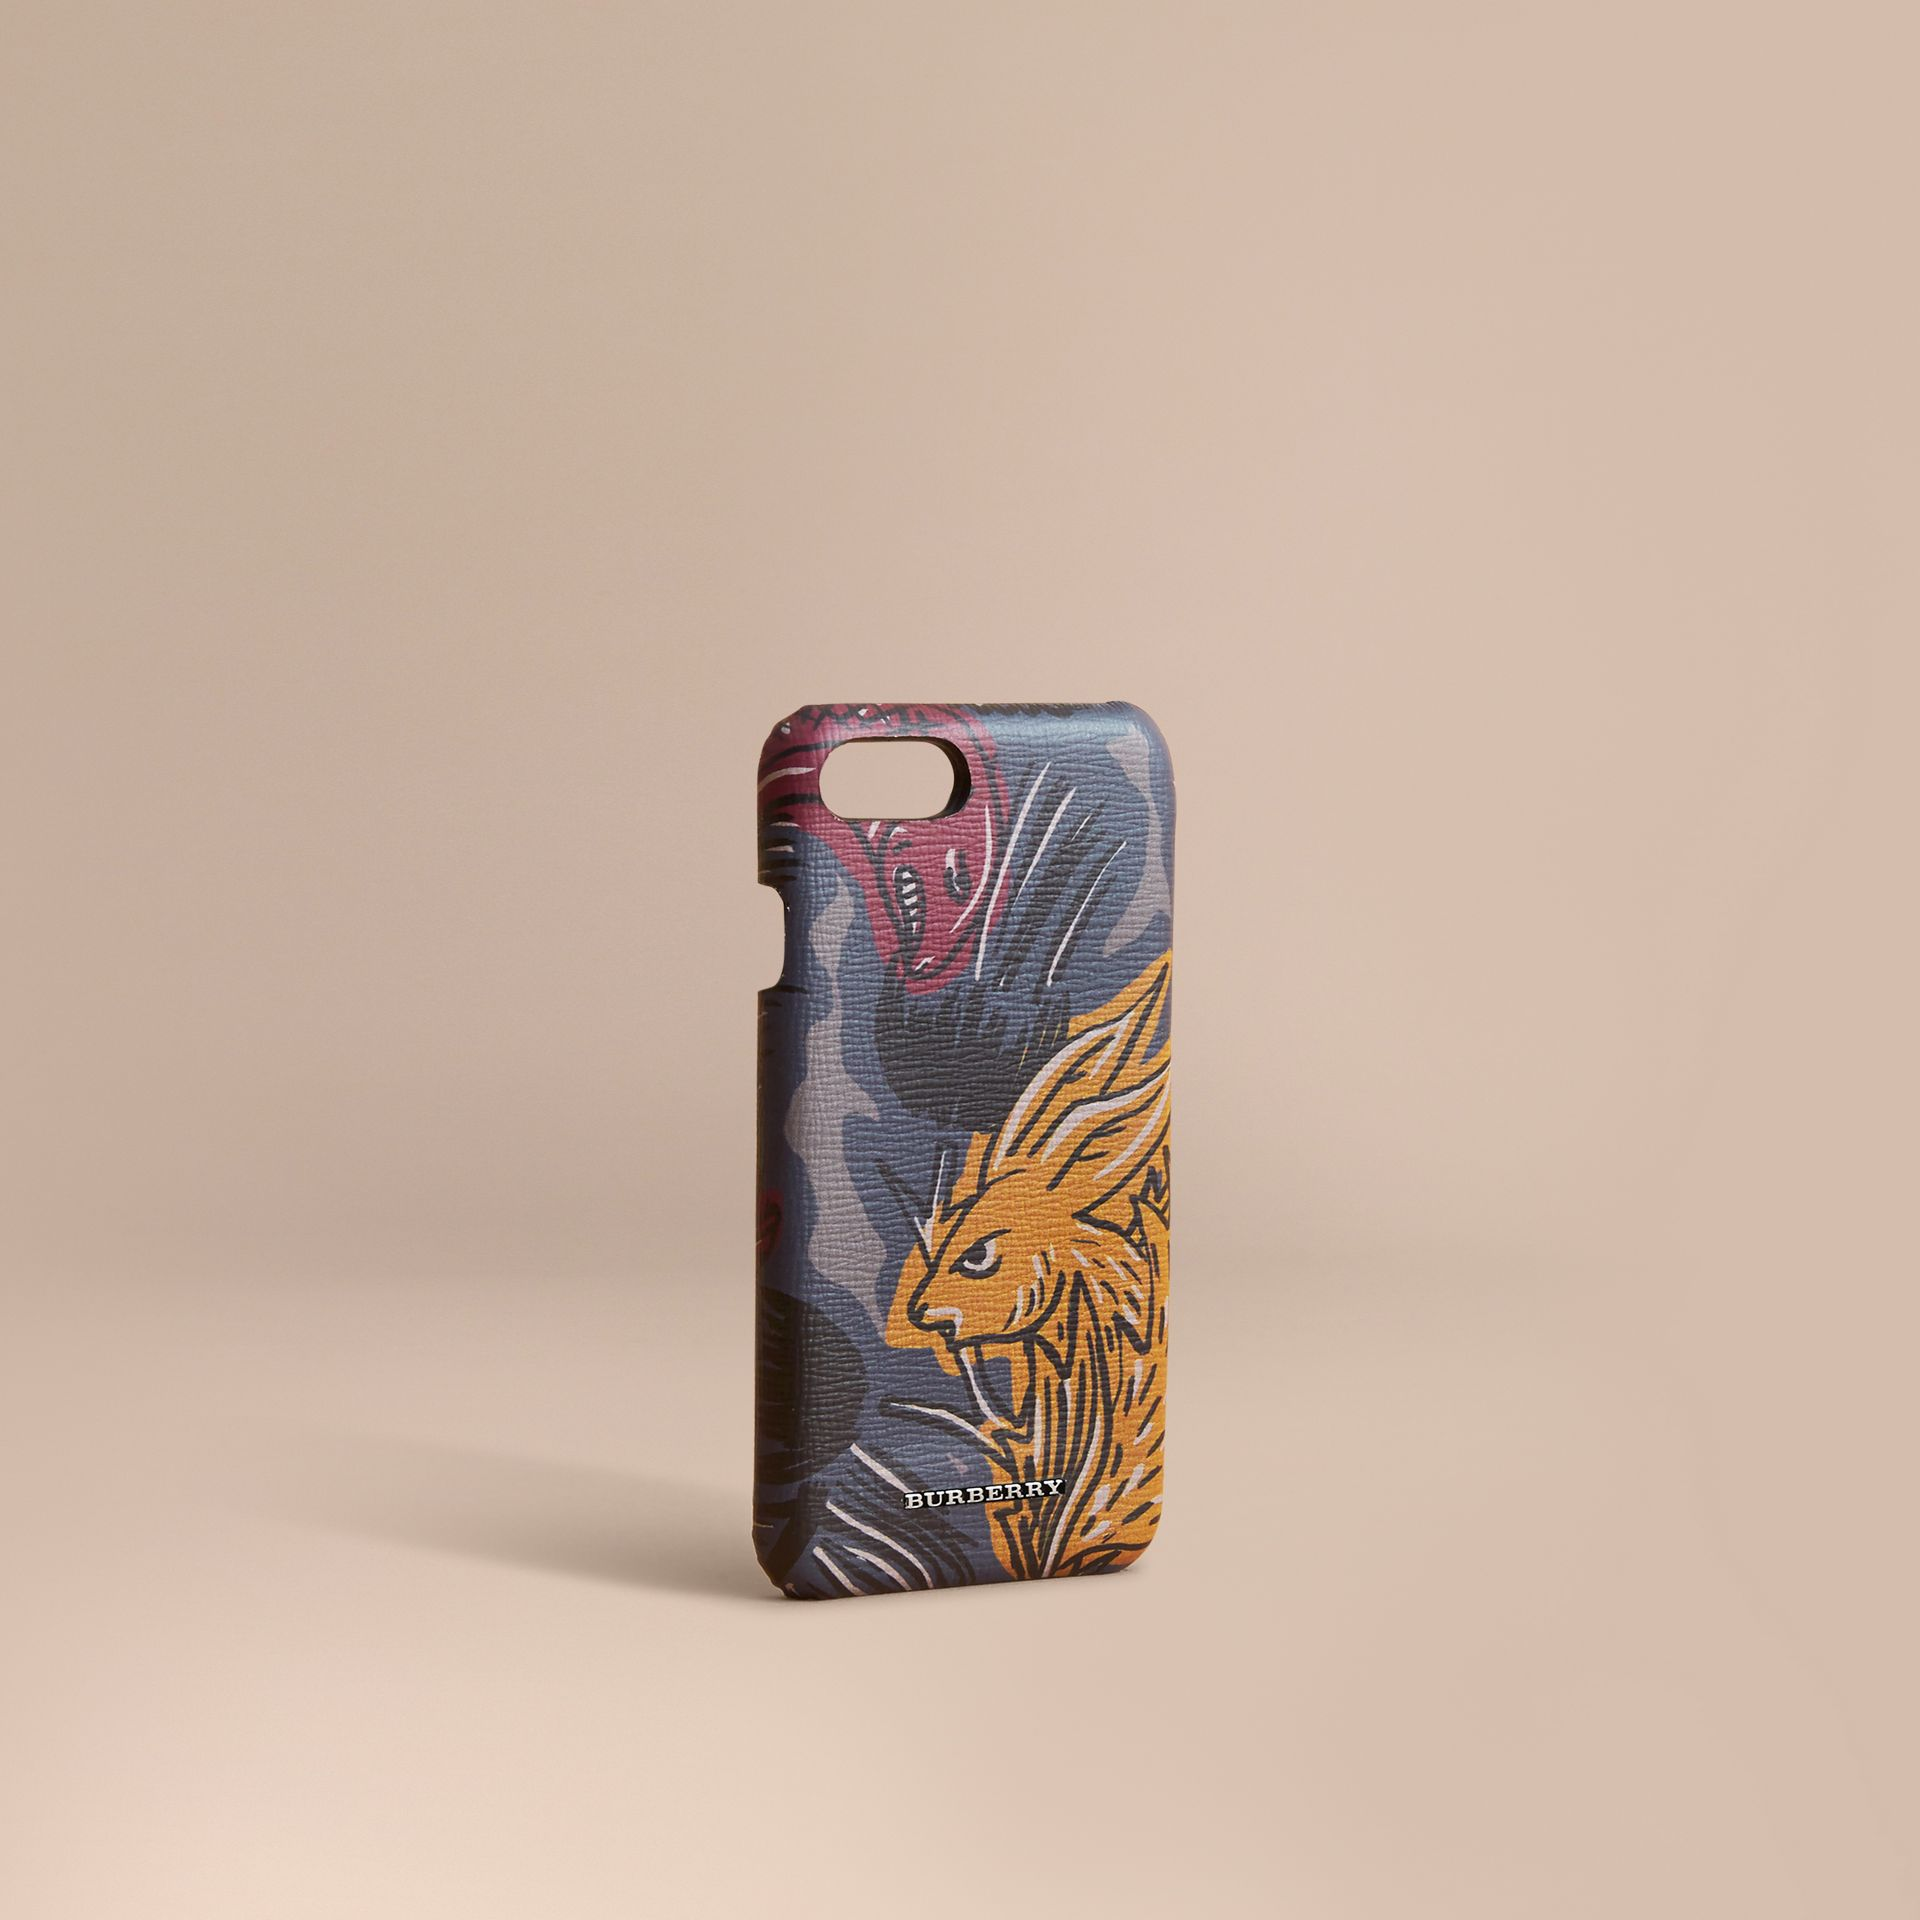 Beasts Print London Leather iPhone 7 Case in Navy Grey - Men | Burberry United Kingdom - gallery image 0